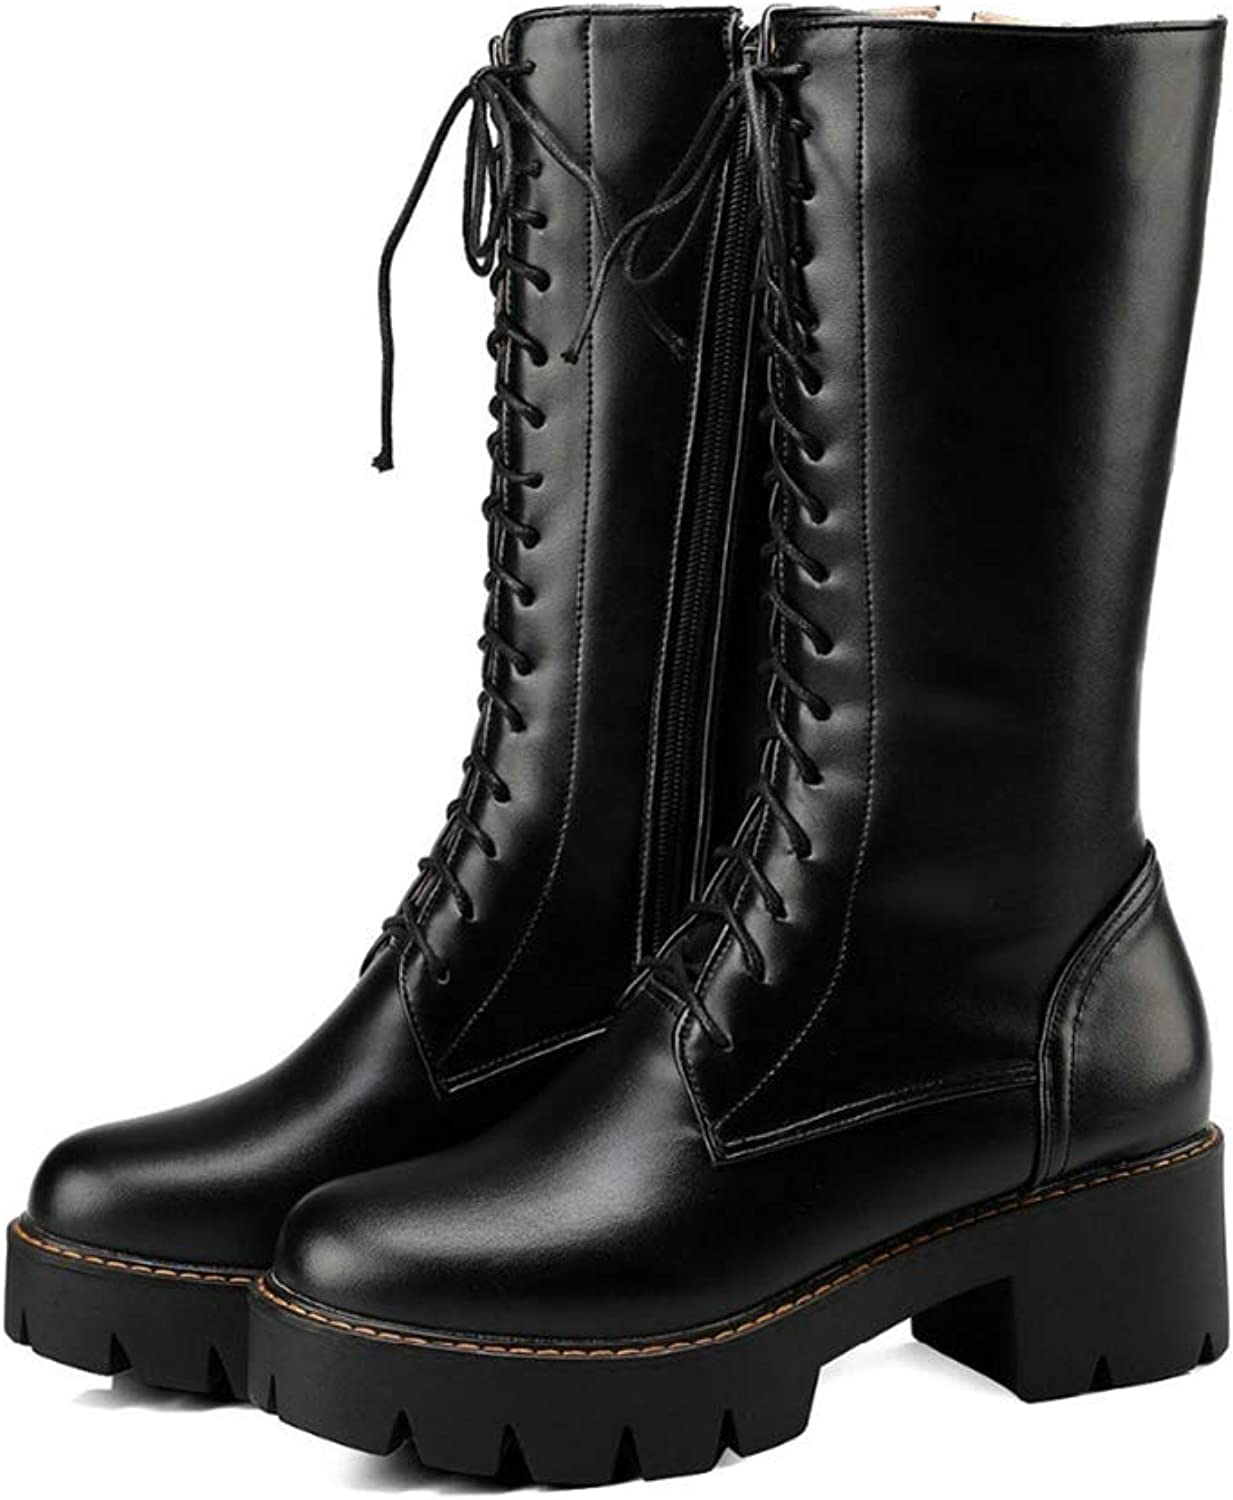 Hoxekle Mid Calf Boot Square Thick Heel Platform Lace Top Round Toe Long Boots Martin Style Black Brown Casual shoes